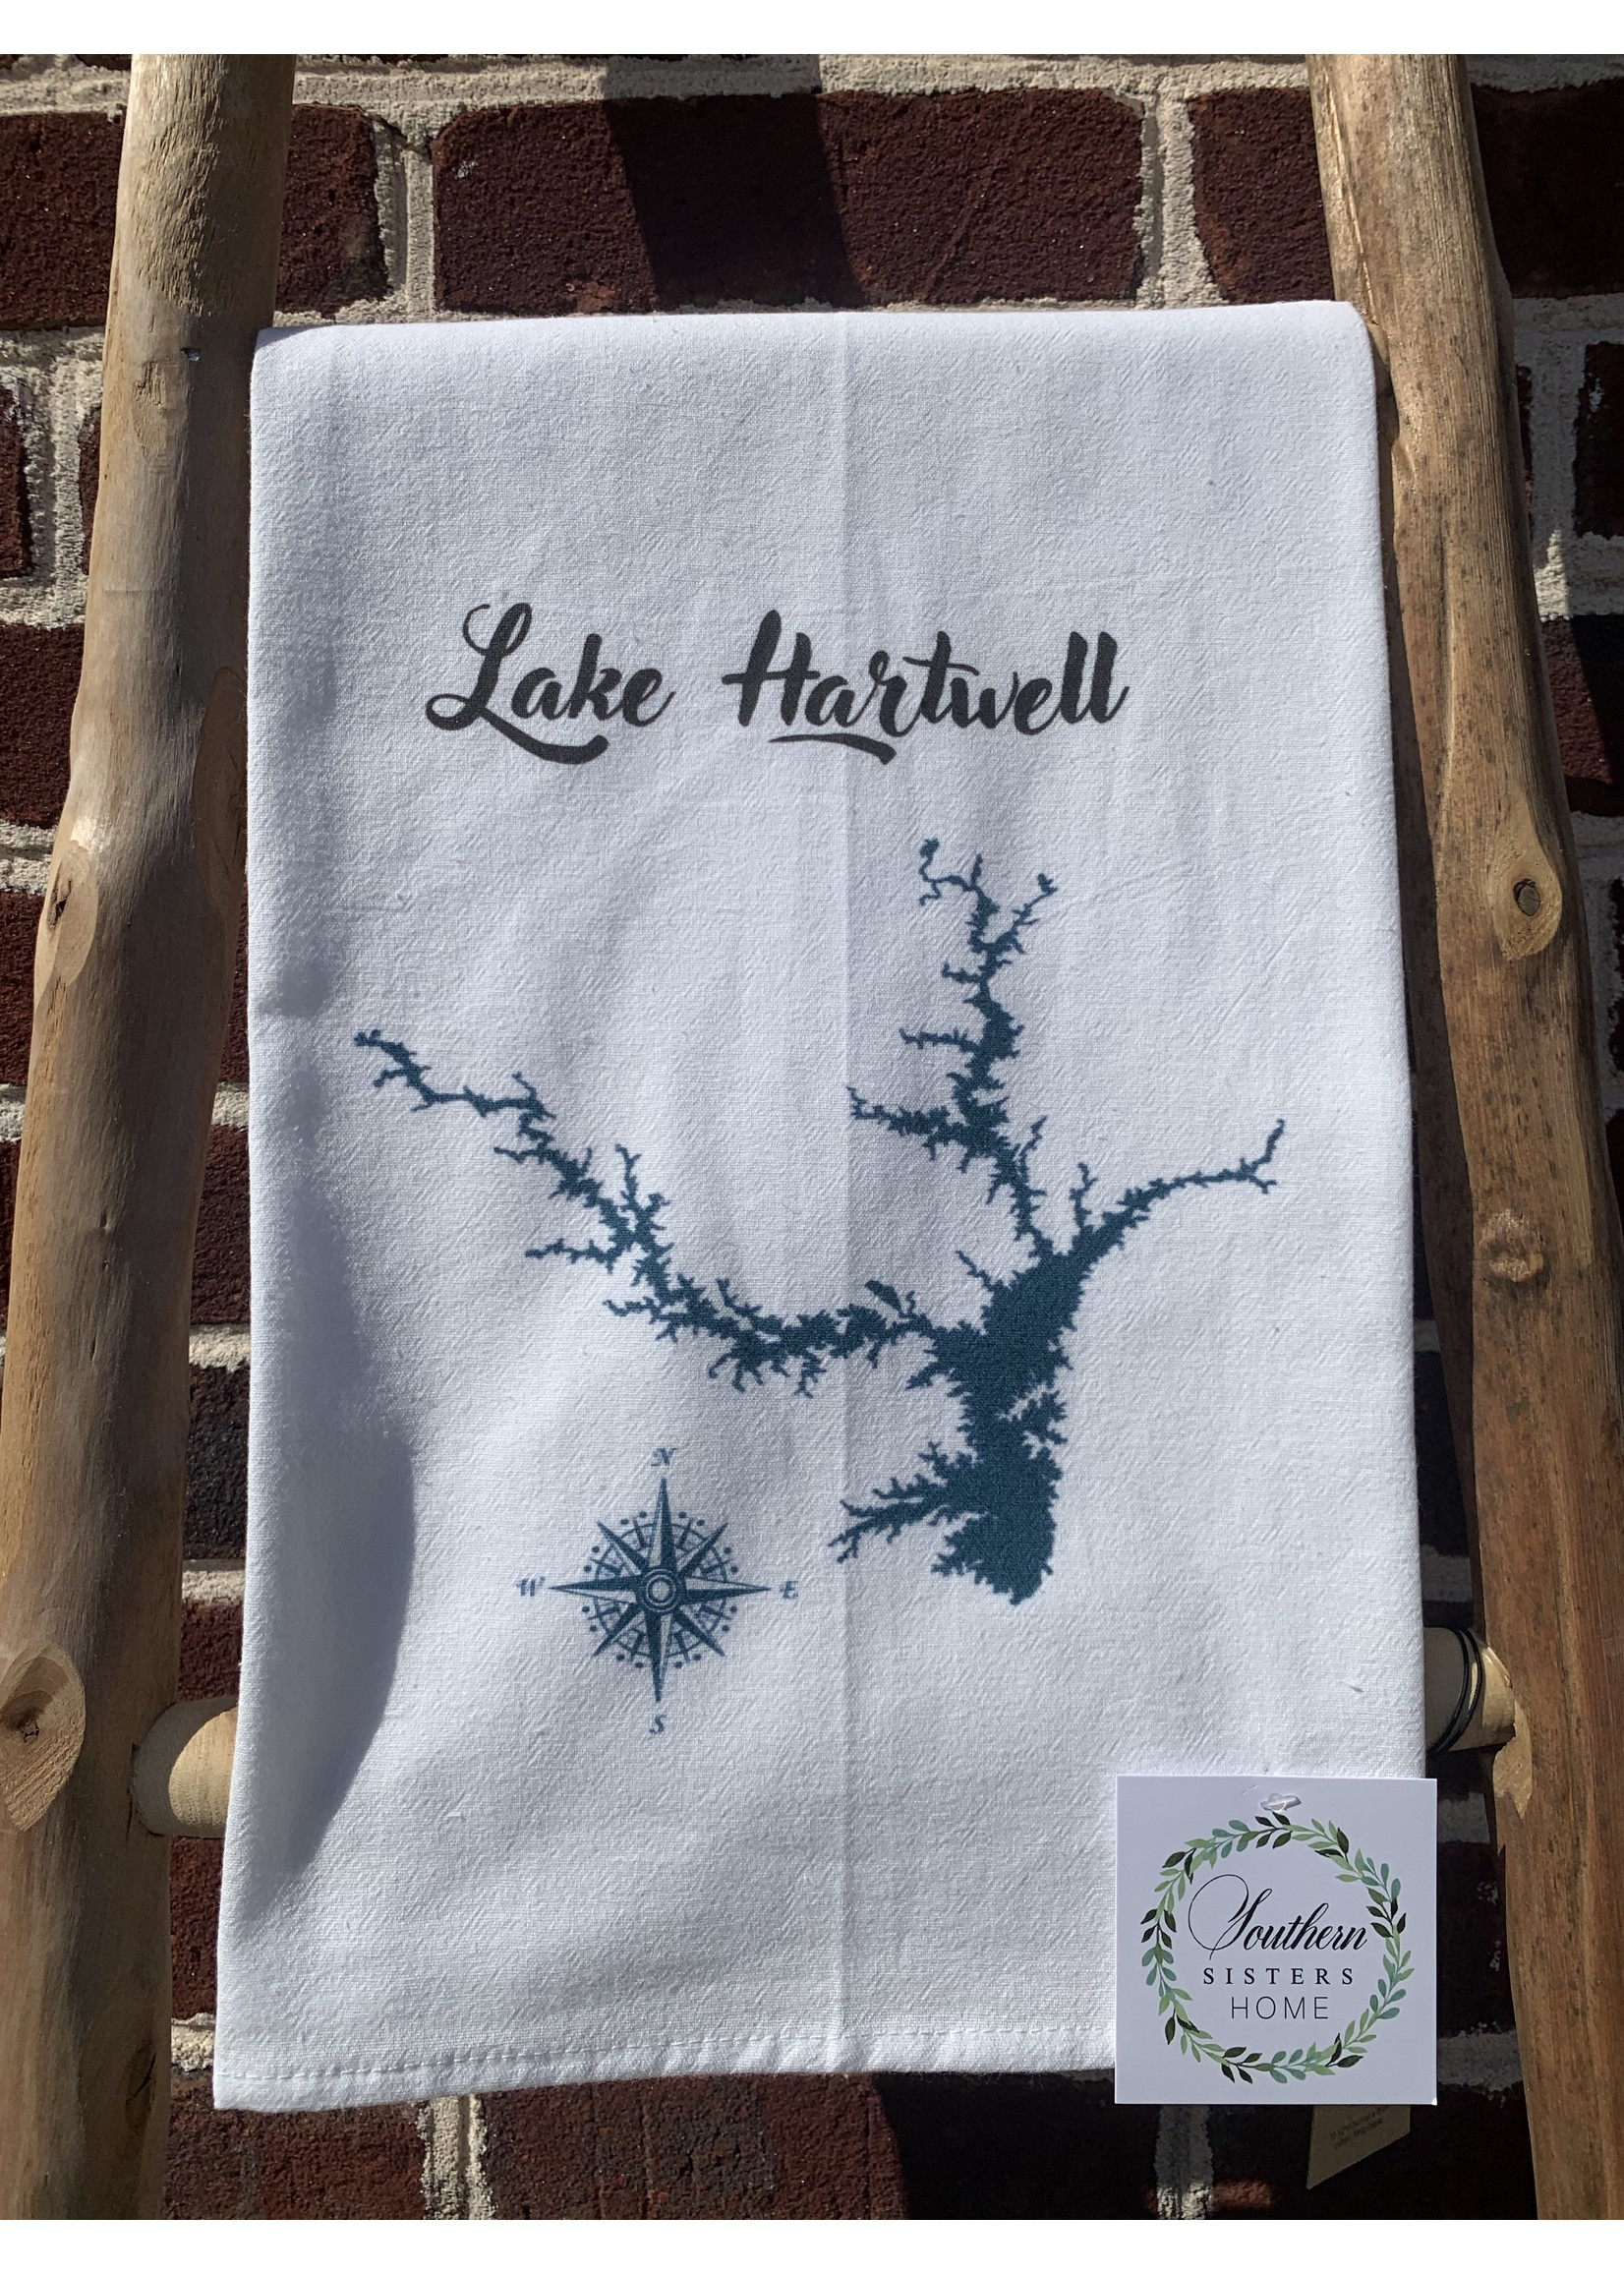 southern sisters Linen Towel Lake Hartwell Map